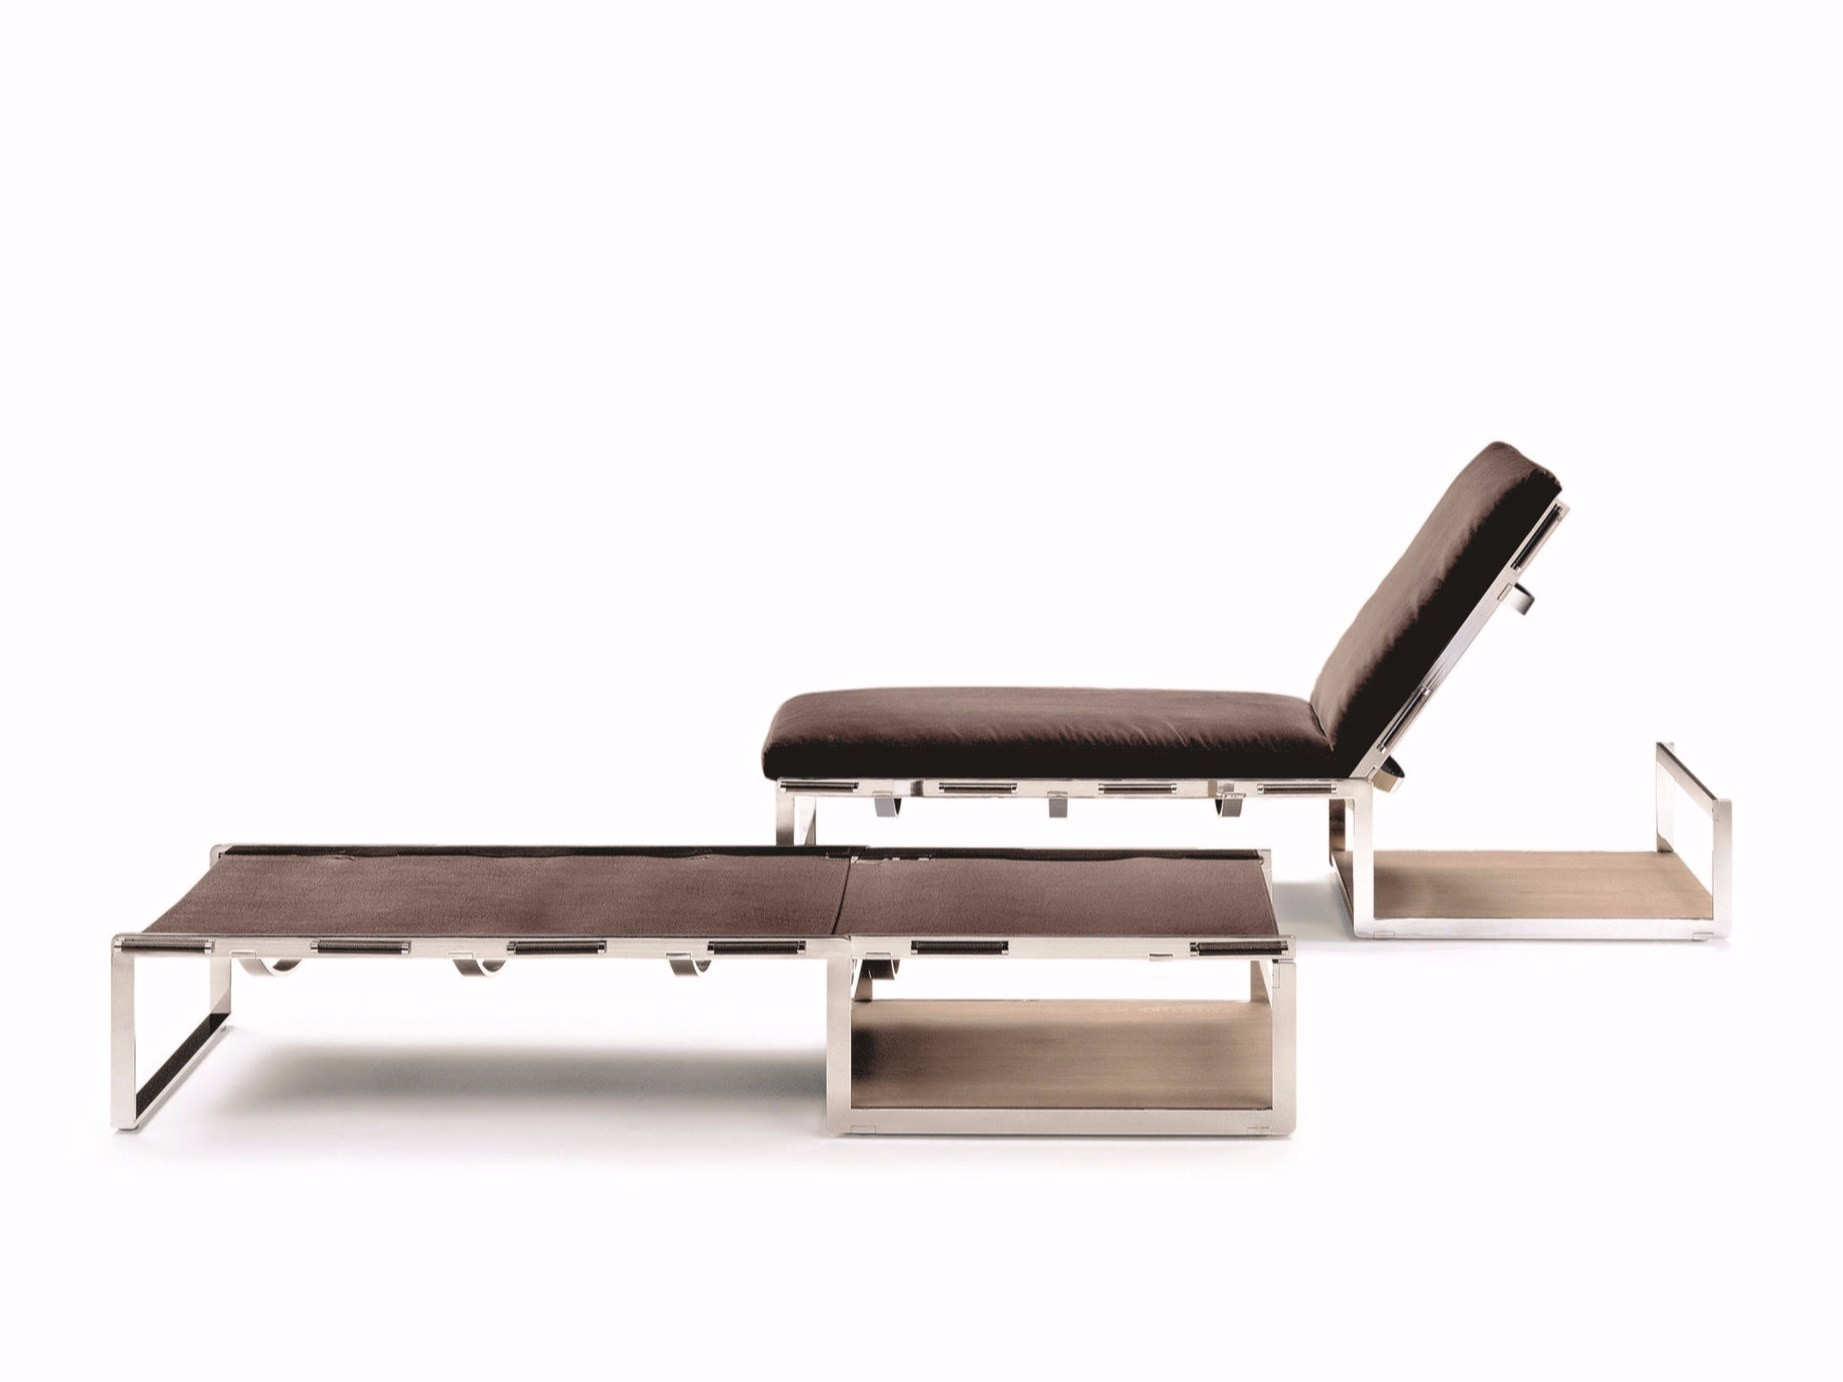 Flexform Air Chaise longue | Deplain.com on chaise furniture, chaise sofa sleeper, chaise recliner chair,